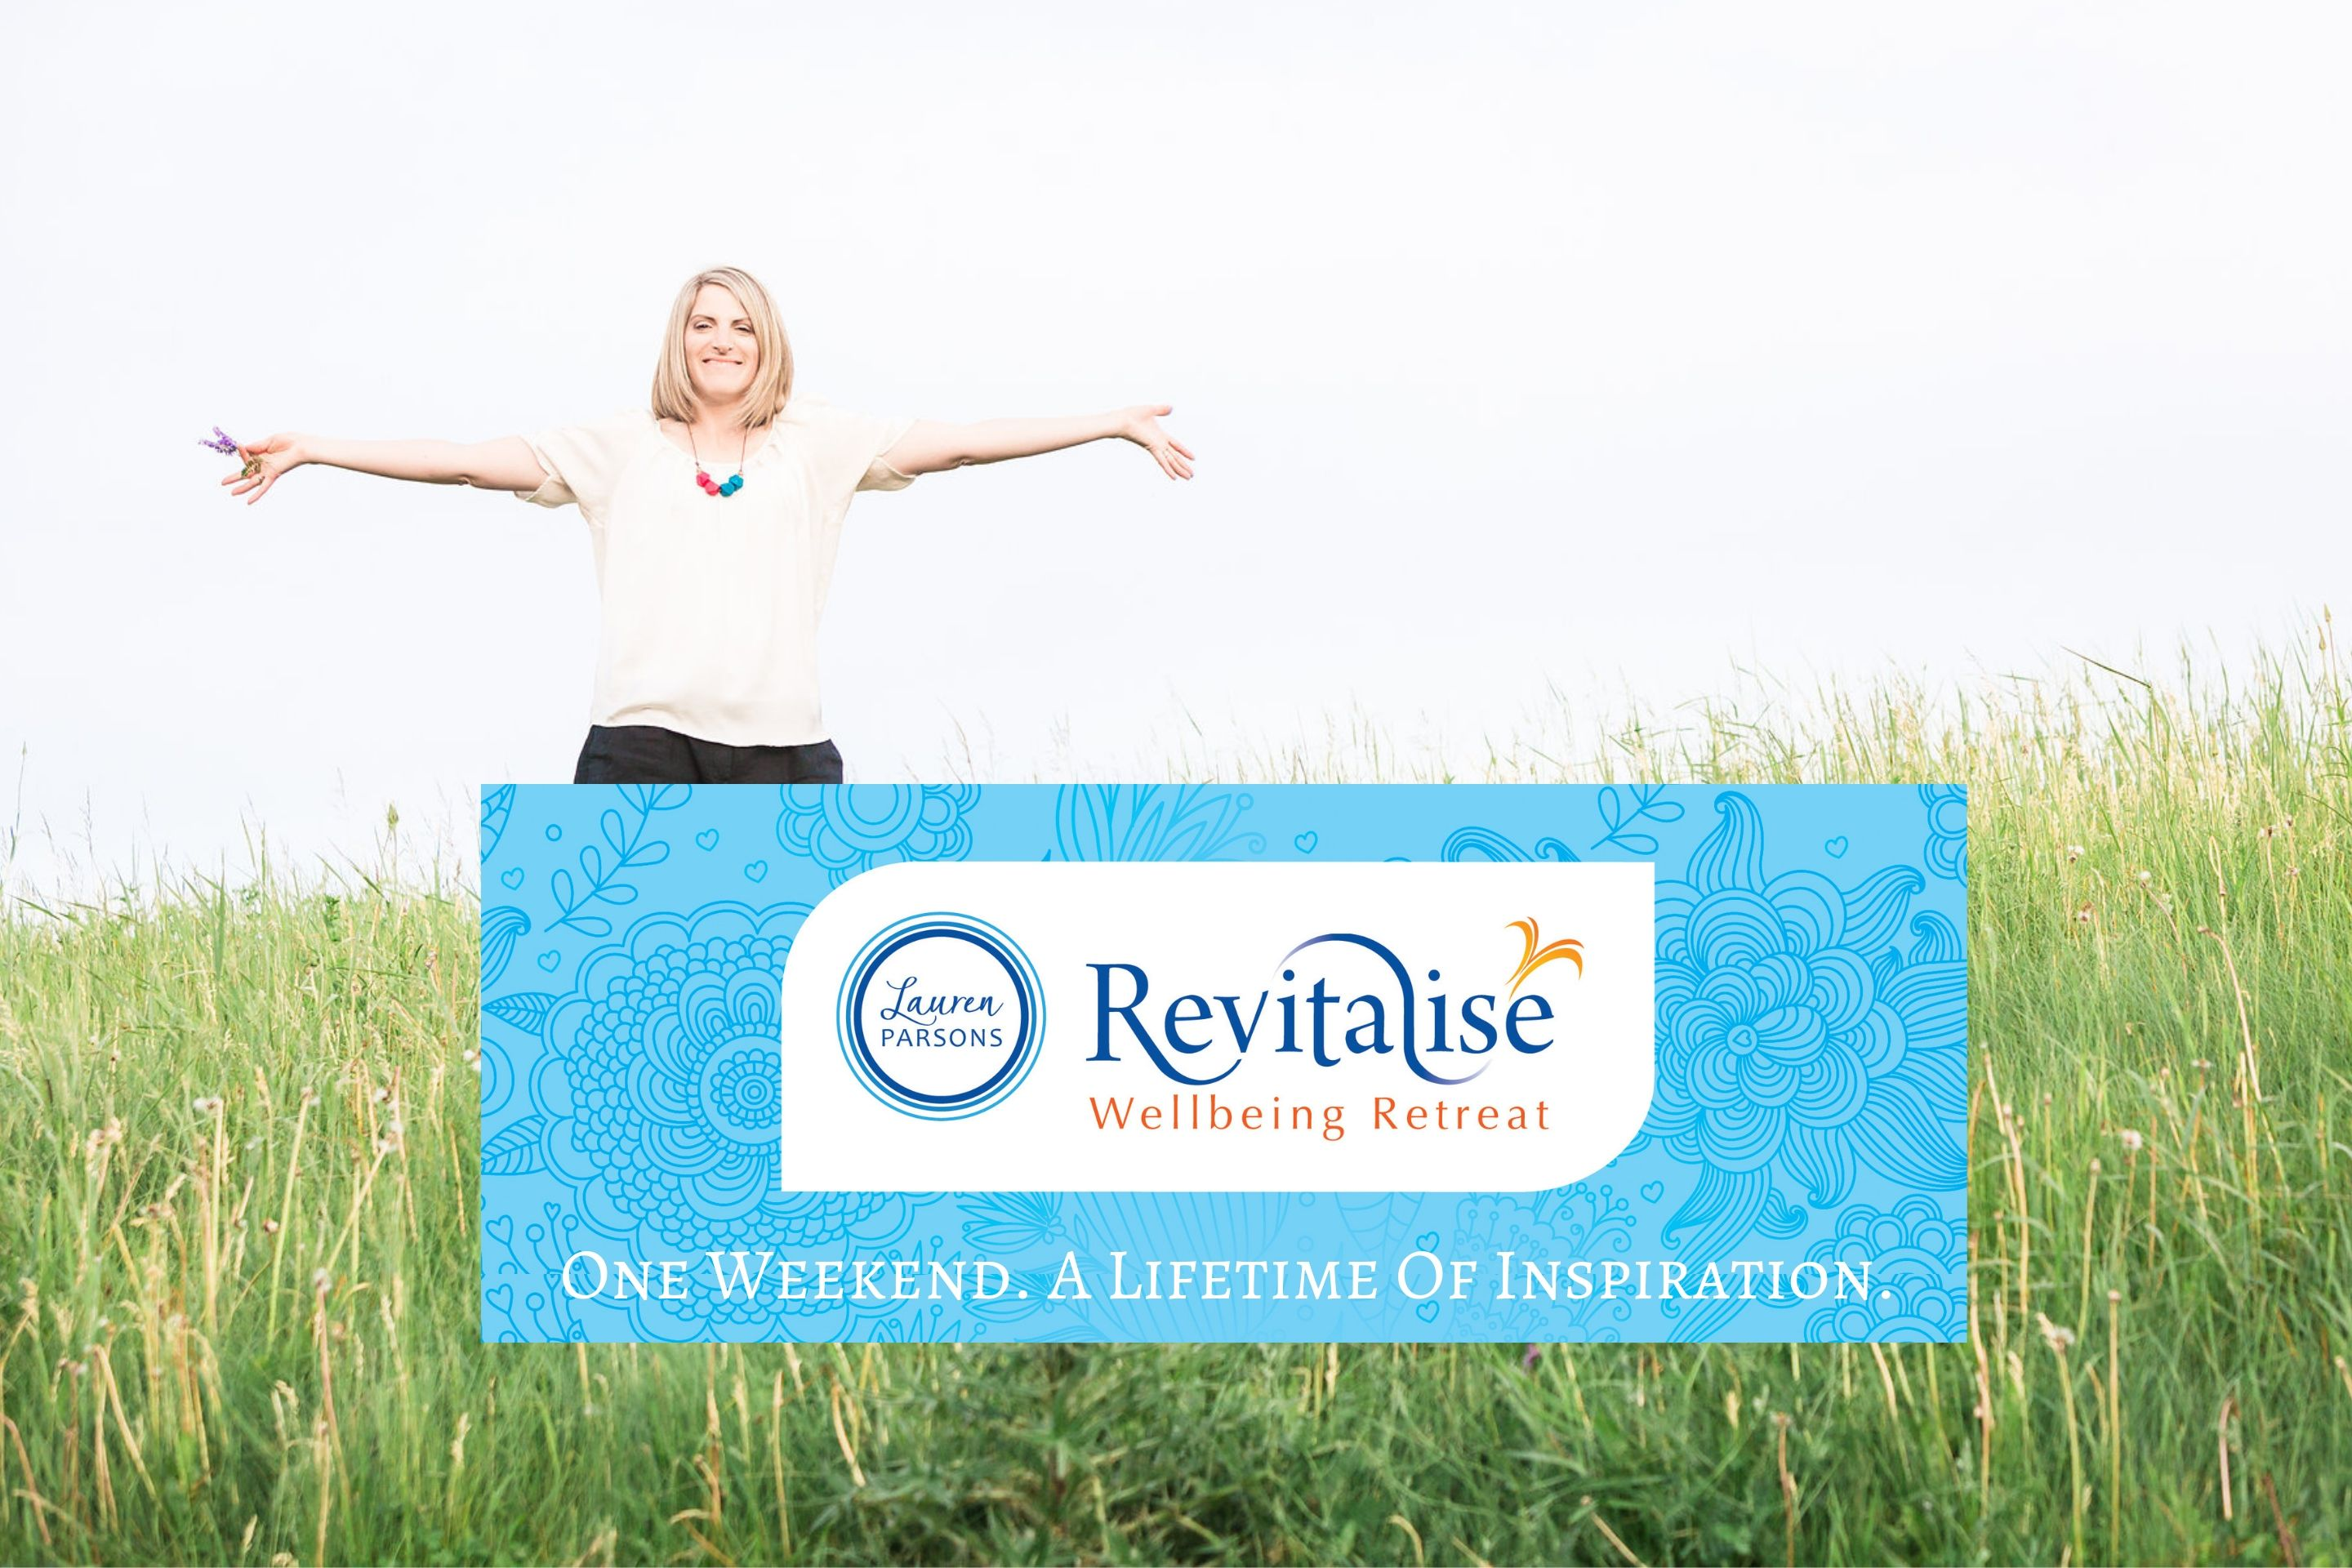 Lauren Parsons Revitalise Wellbeing Retreats